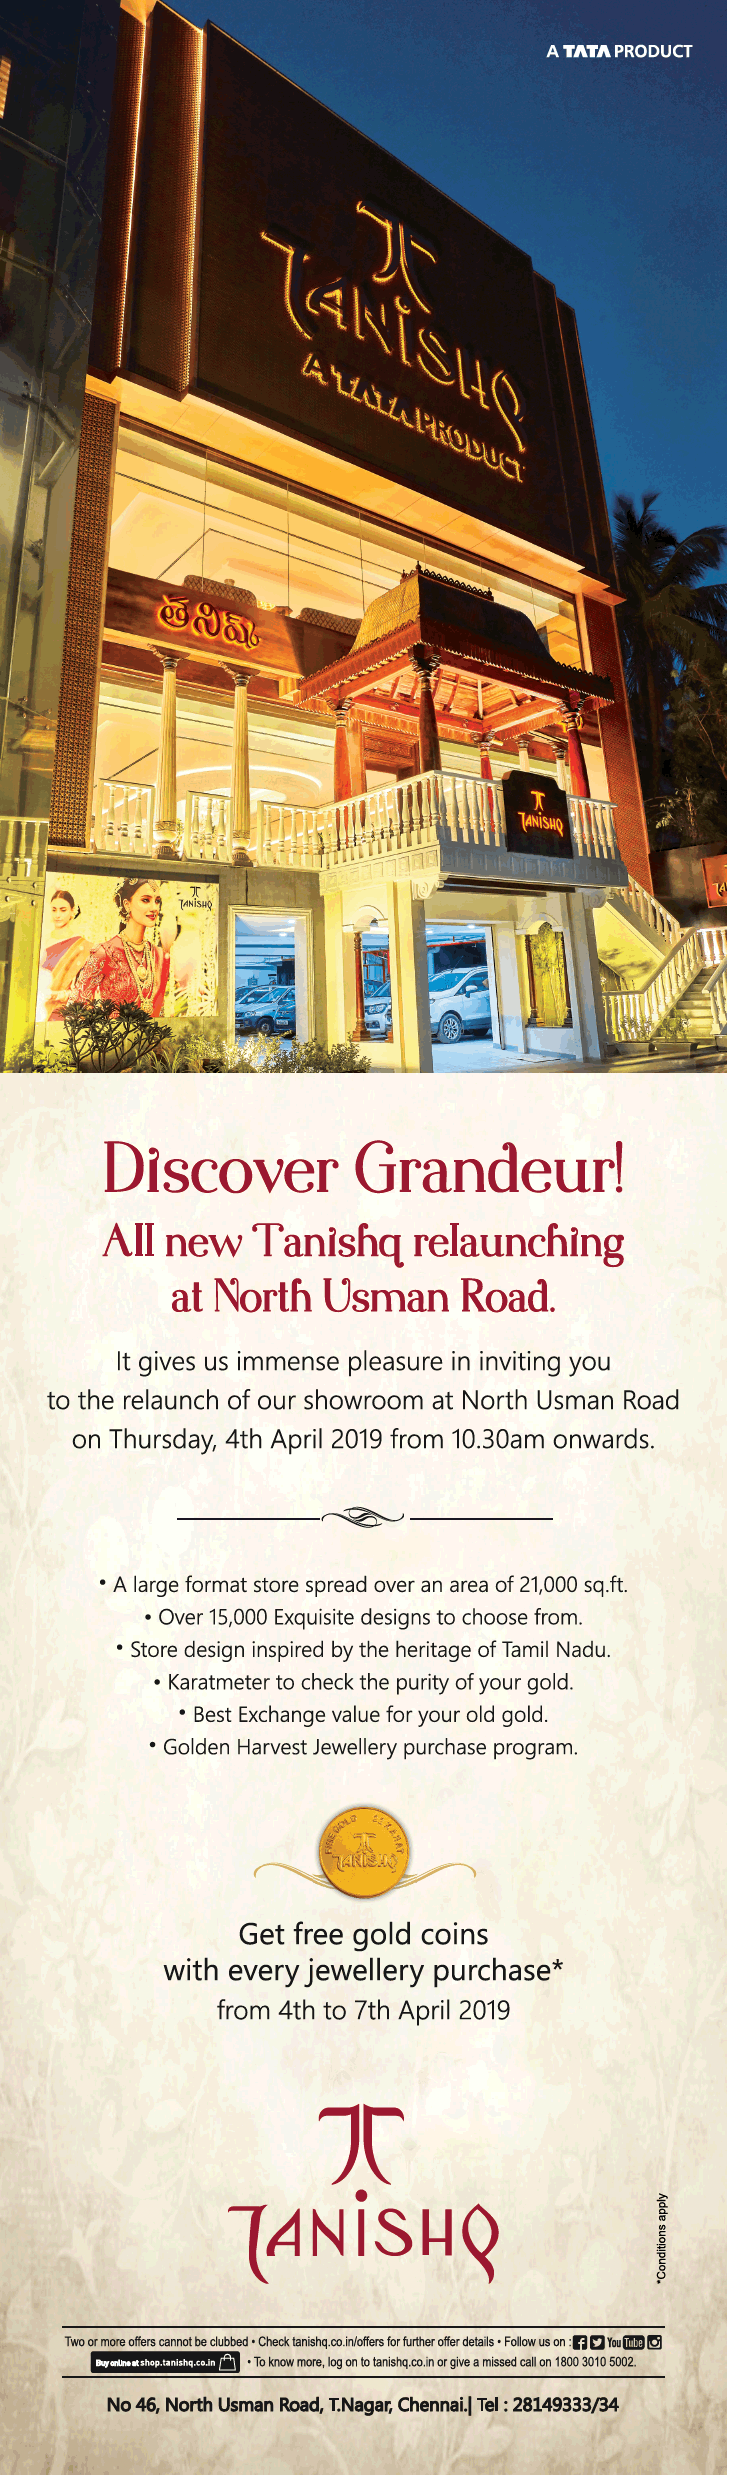 tanishq-jewellery-discover-granduer-all-new-tanishq-relaunching-at-north-usman-road-ad-times-of-india-chennai-04-04-2019.png